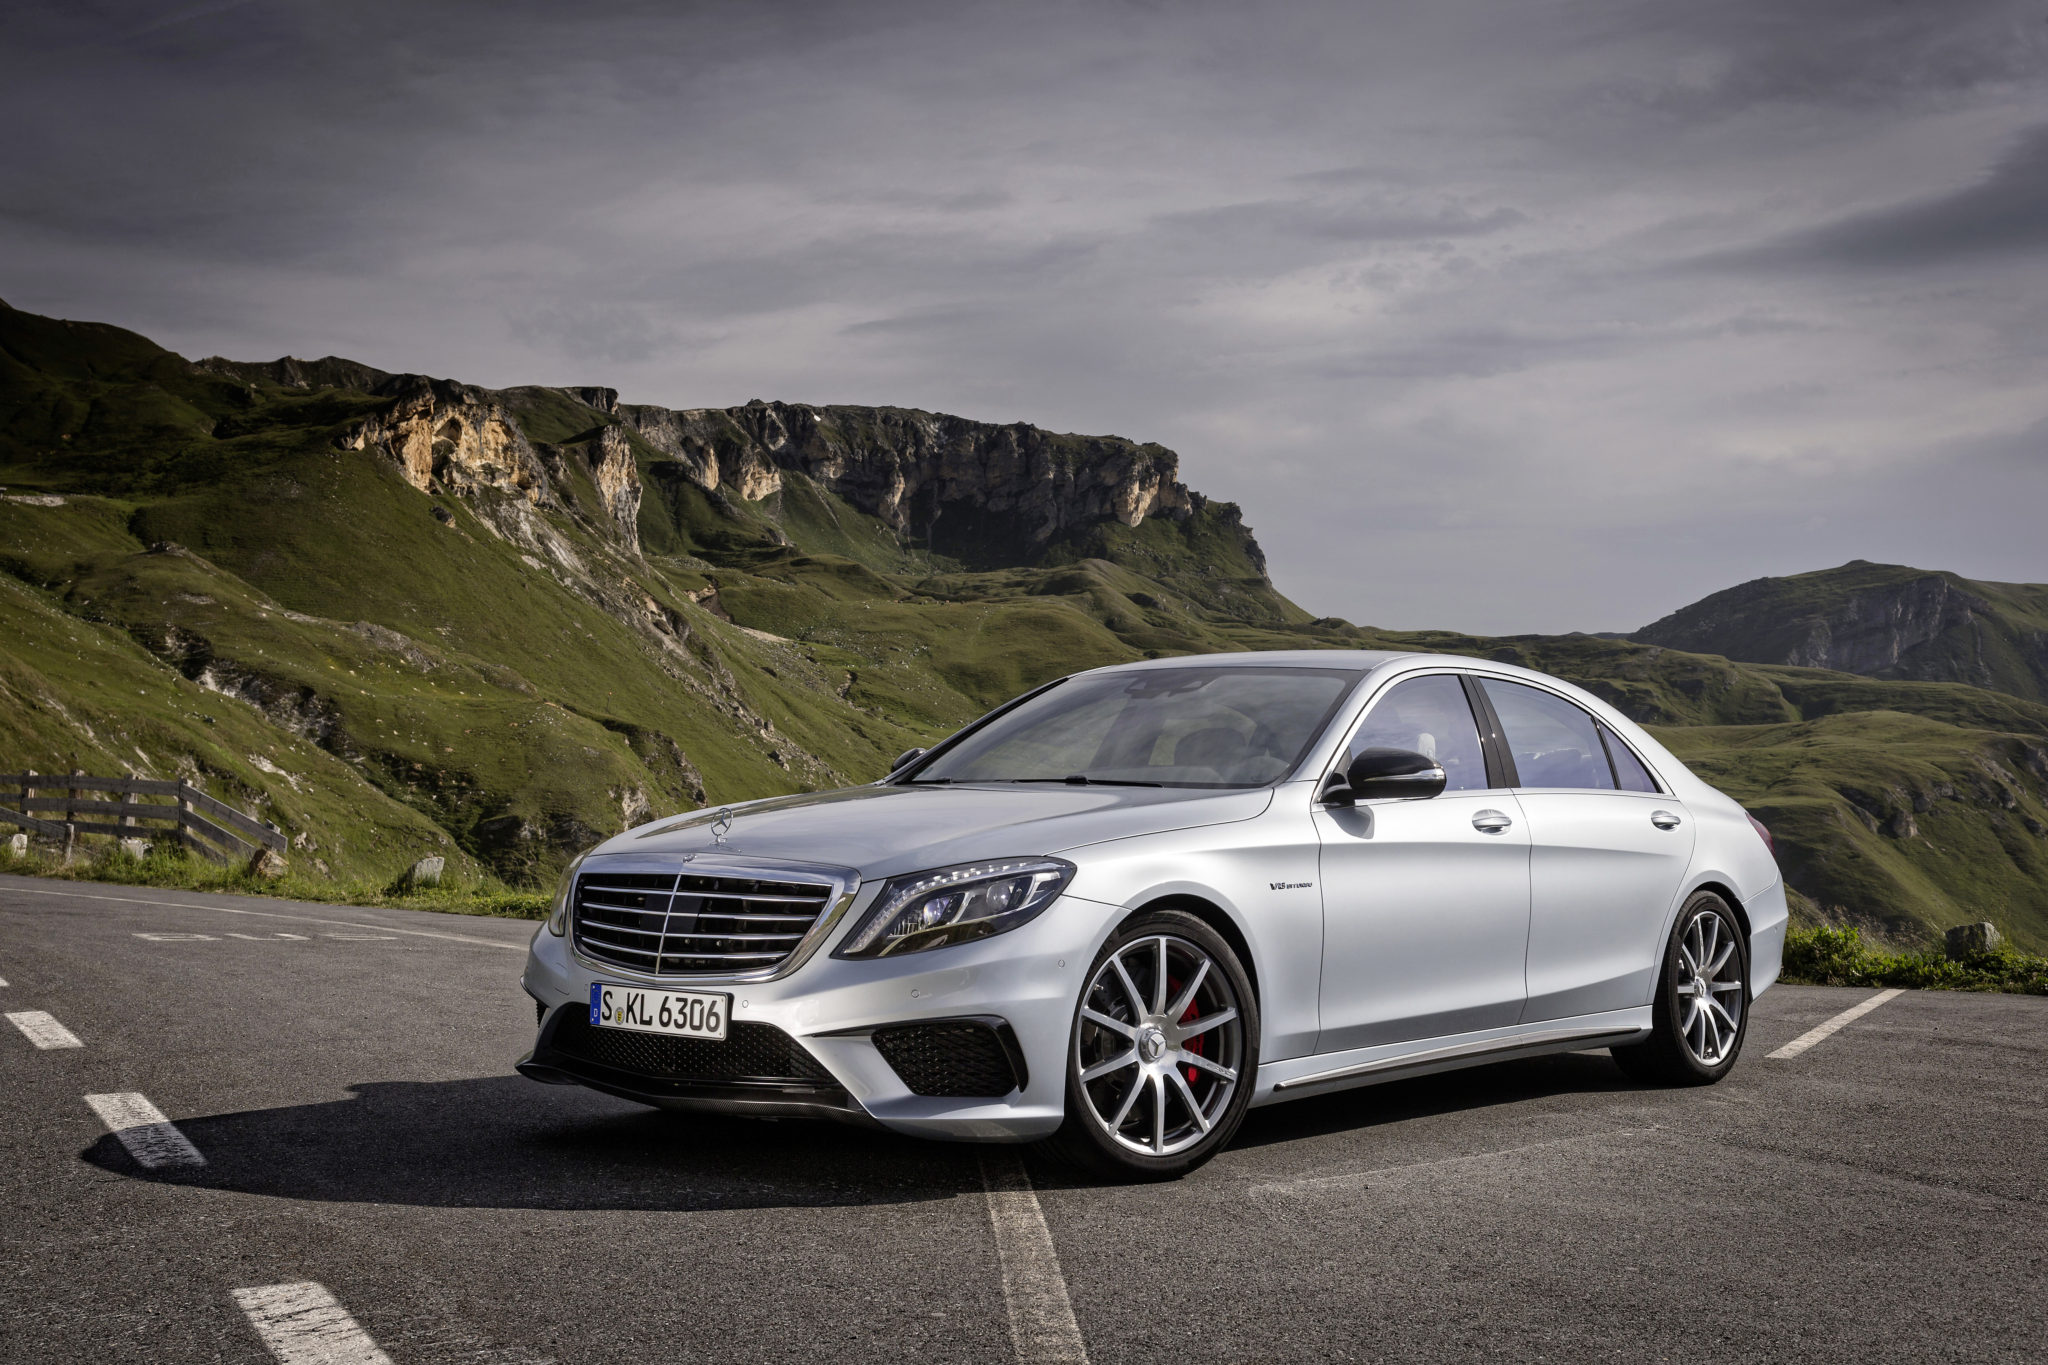 2014 mercedes benz s63 amg the world 39 s best car gaywheels for How much is a 2014 mercedes benz